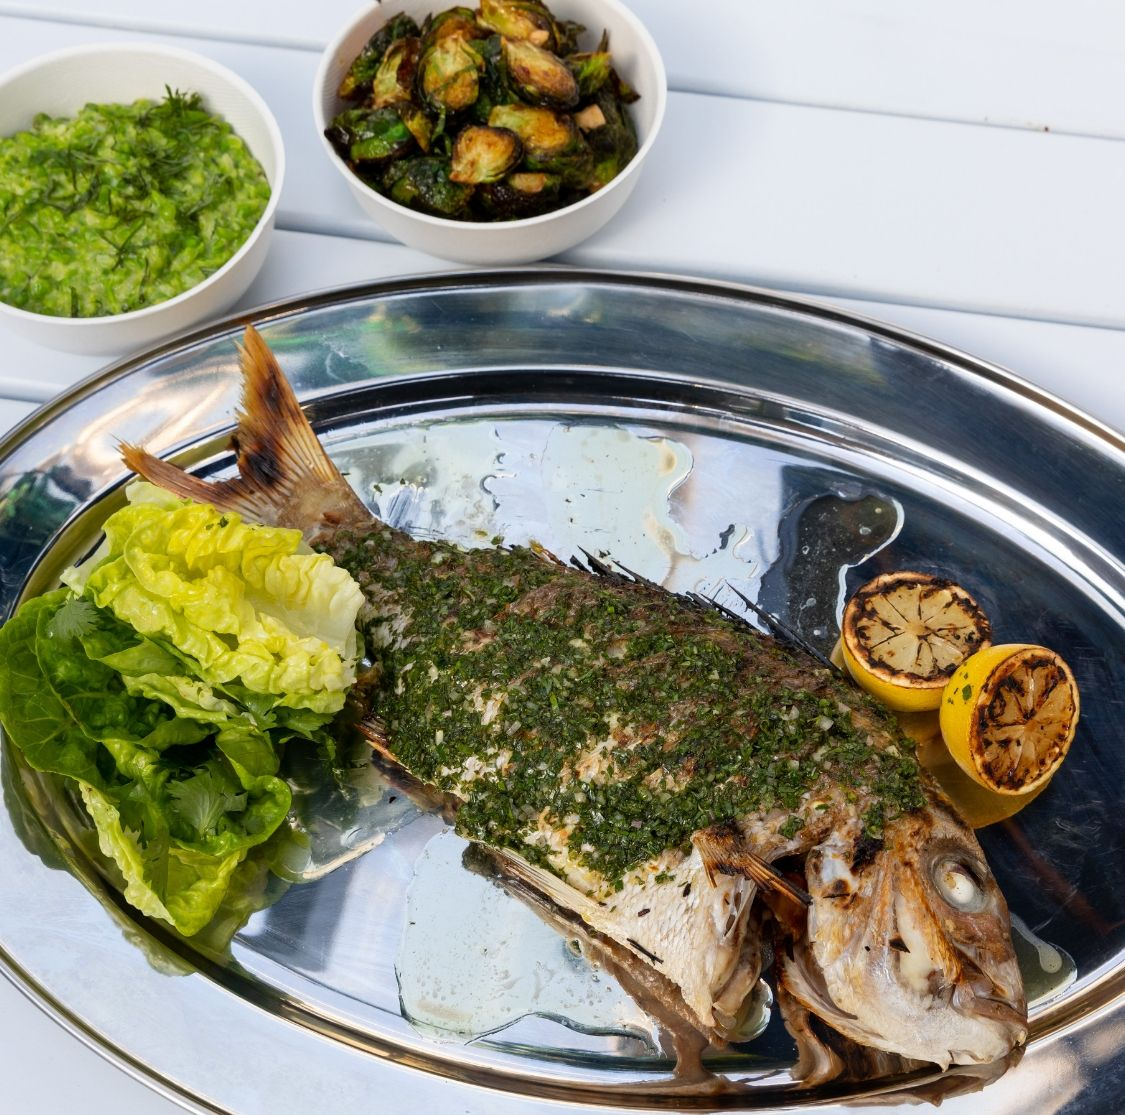 Market Galley whole grilled fish - GRILLED ITEMS SERVED with LEMON HERB & GARLIC BUTTER, HOUSE SALAD OR CHIPS